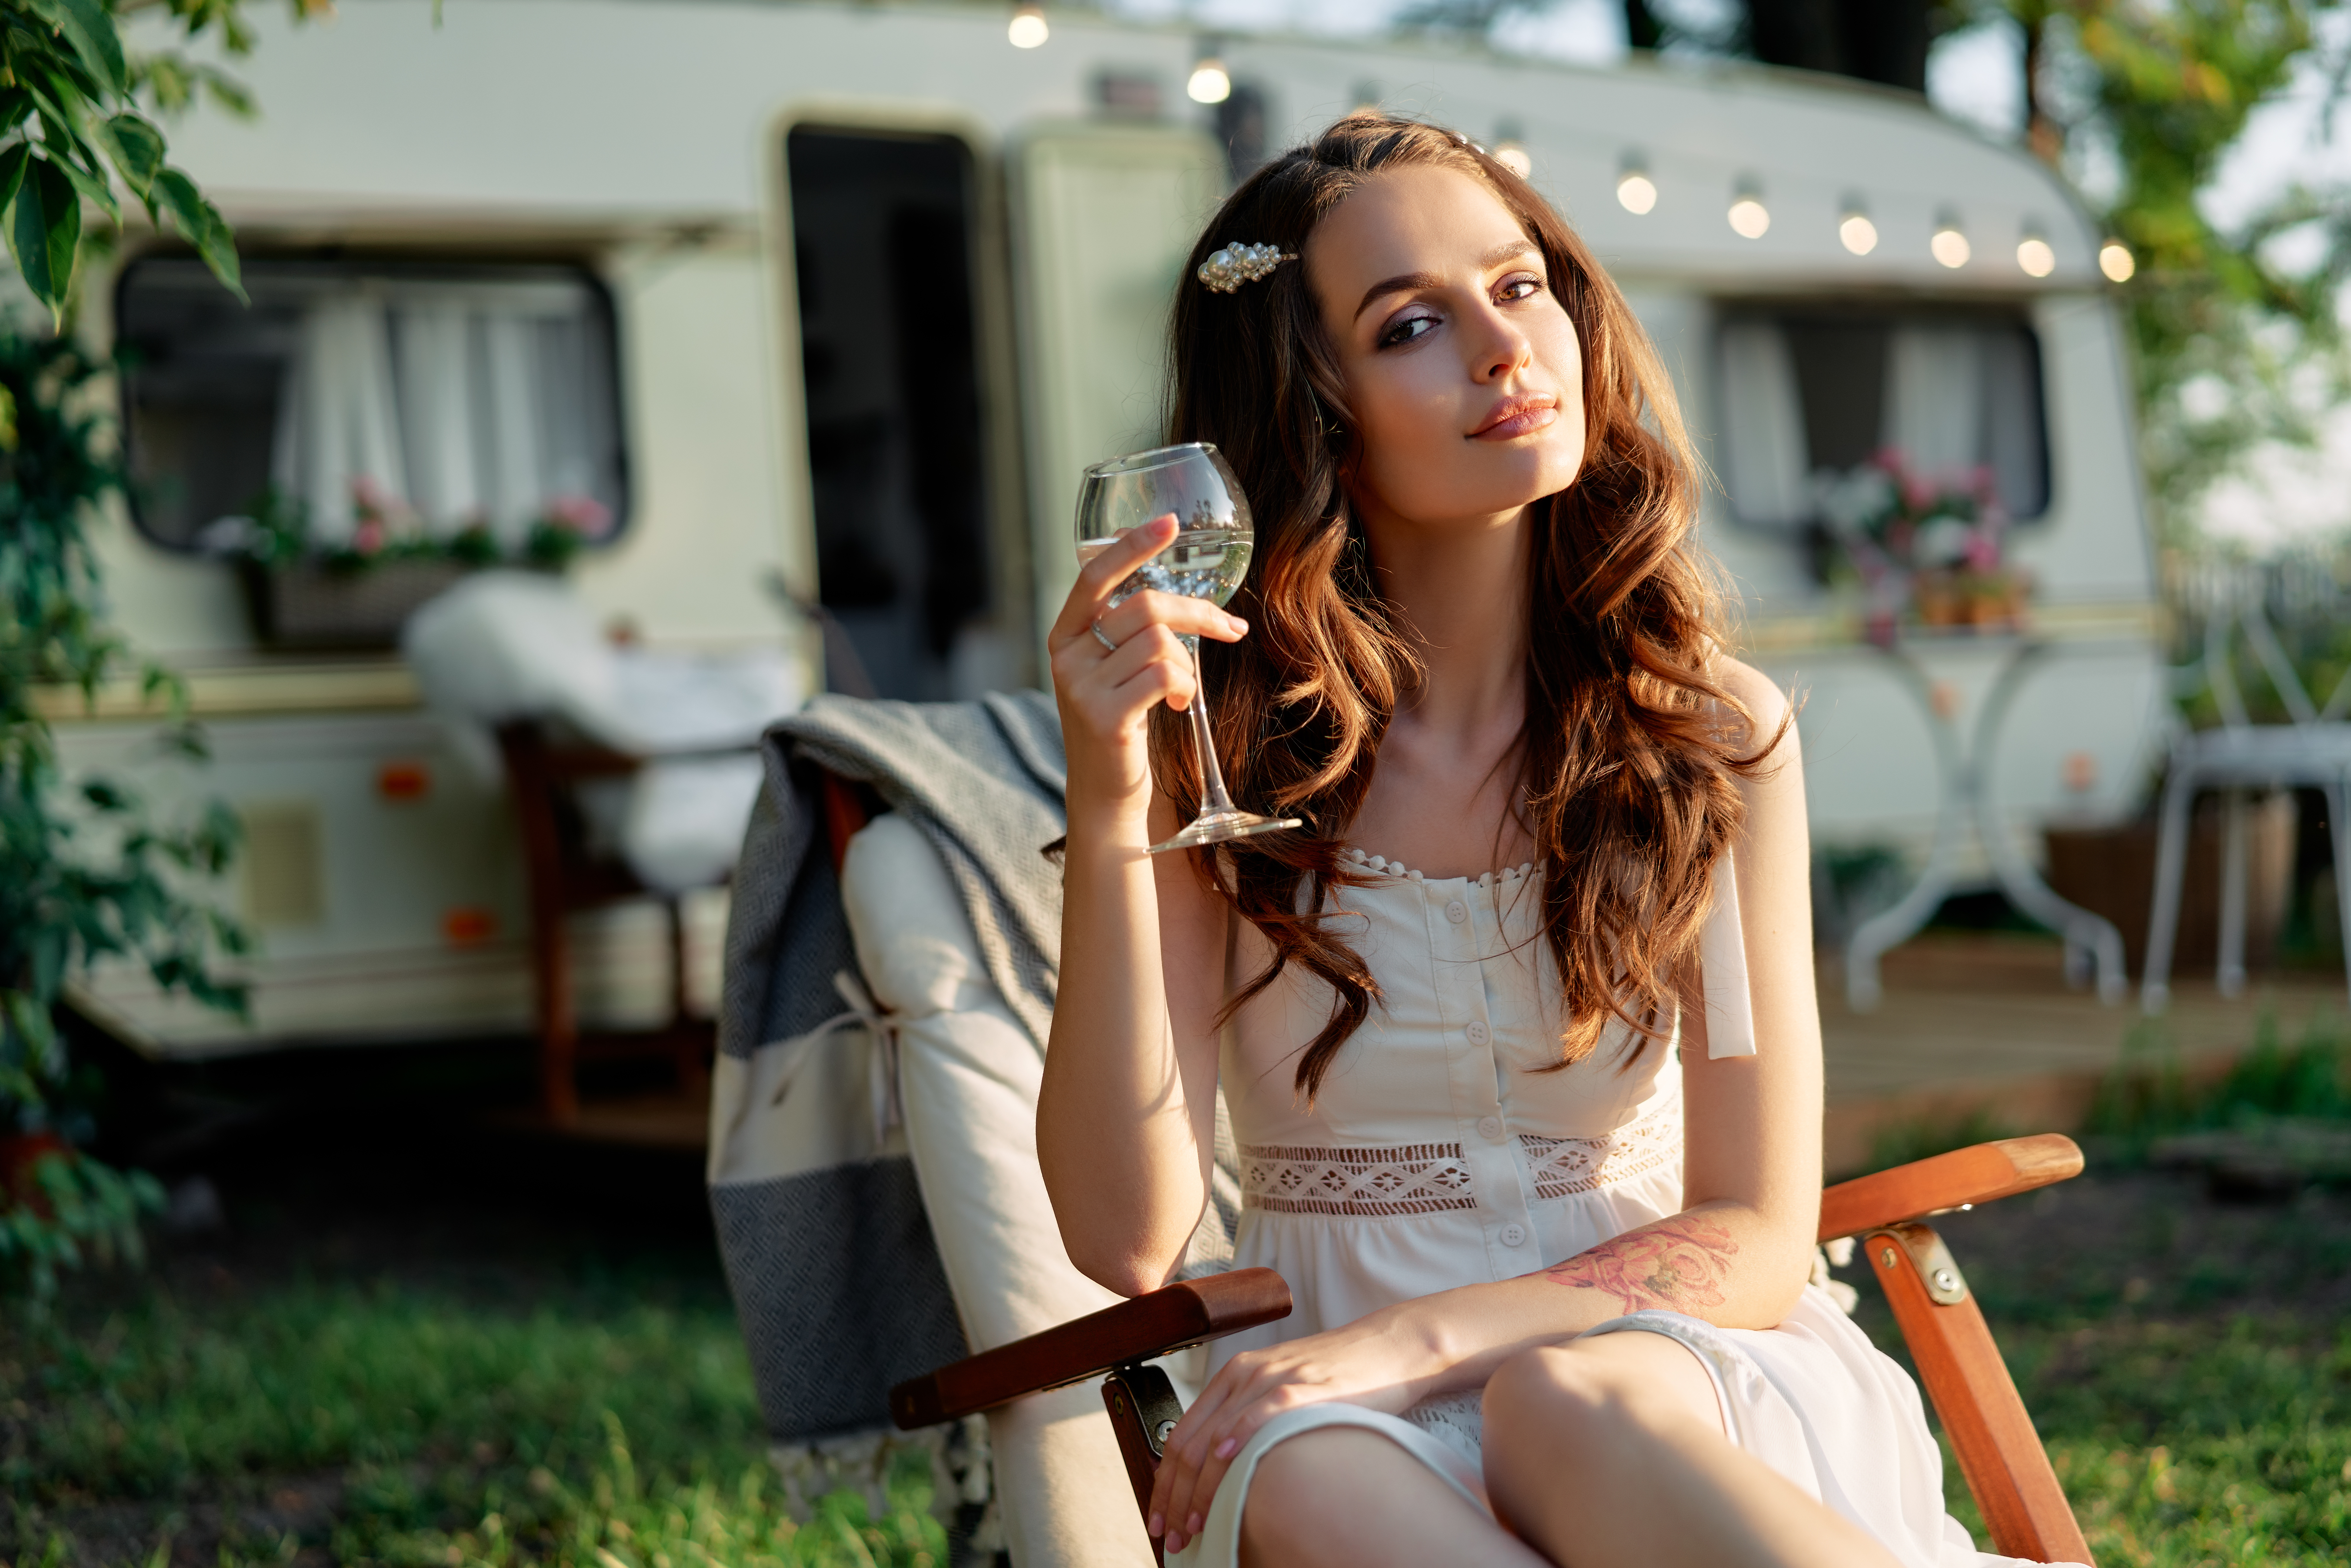 These Surprisingly Common RV Park Rules Could Catch You Off Guard